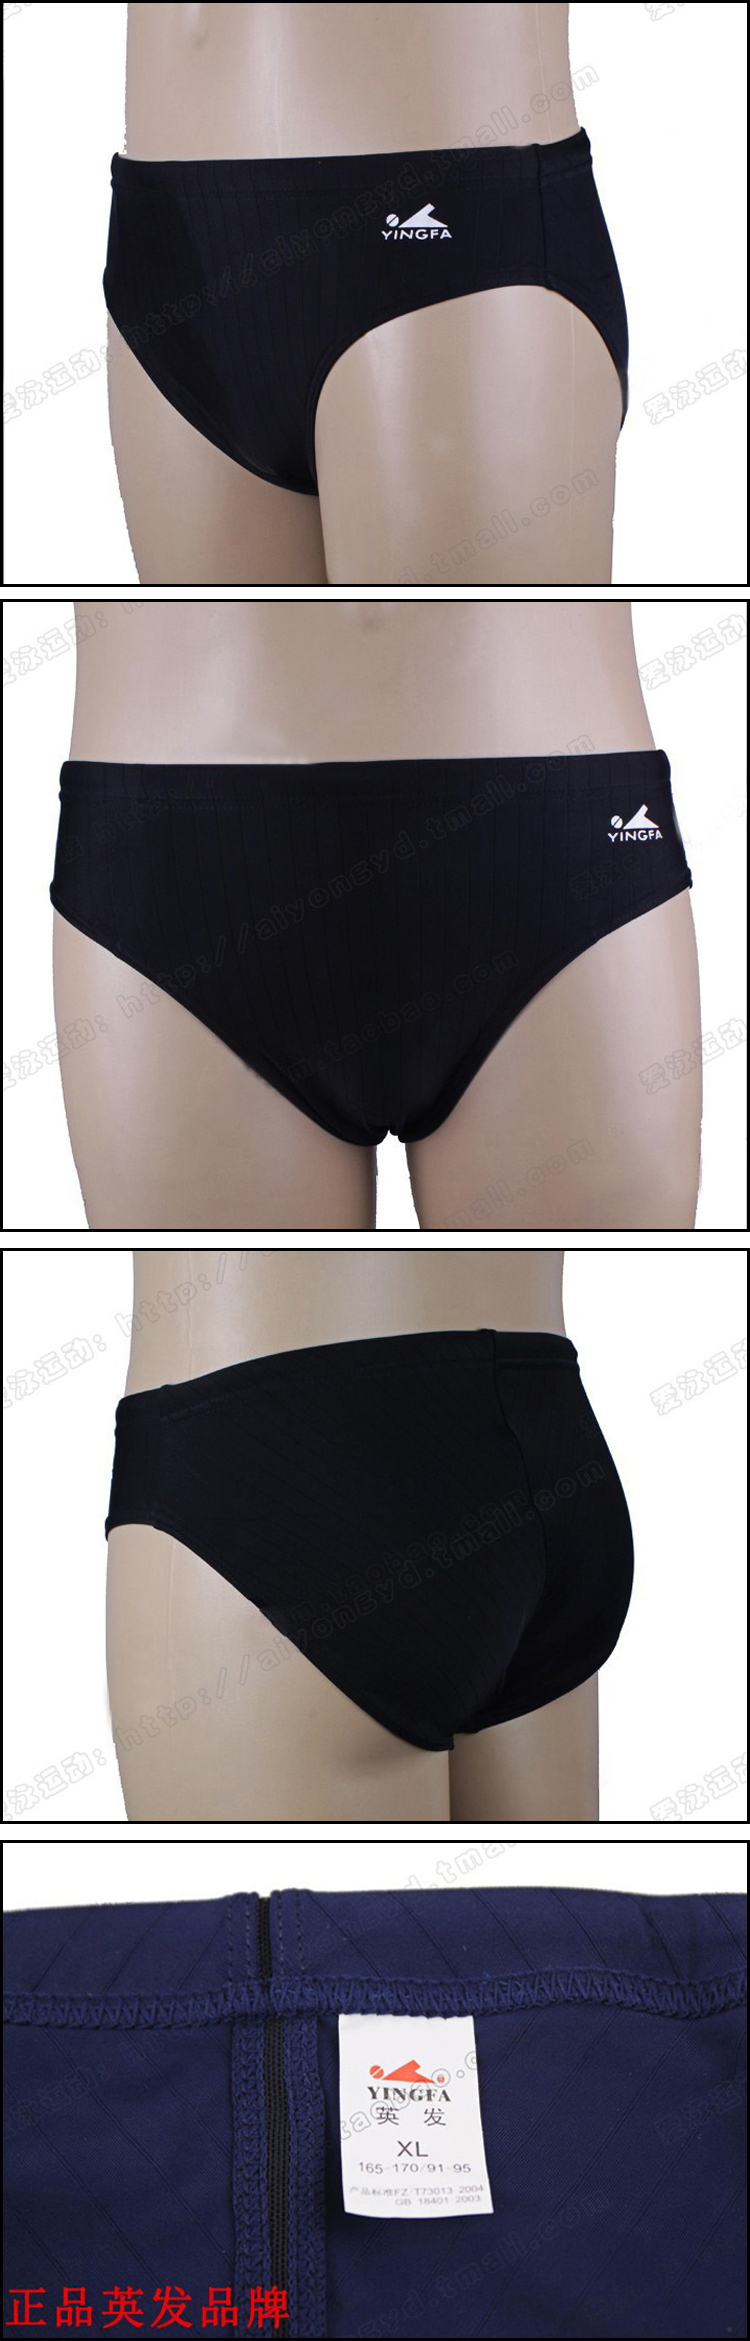 Launcher Climax / yingfa new 9202 men's swimming trunks triangle player